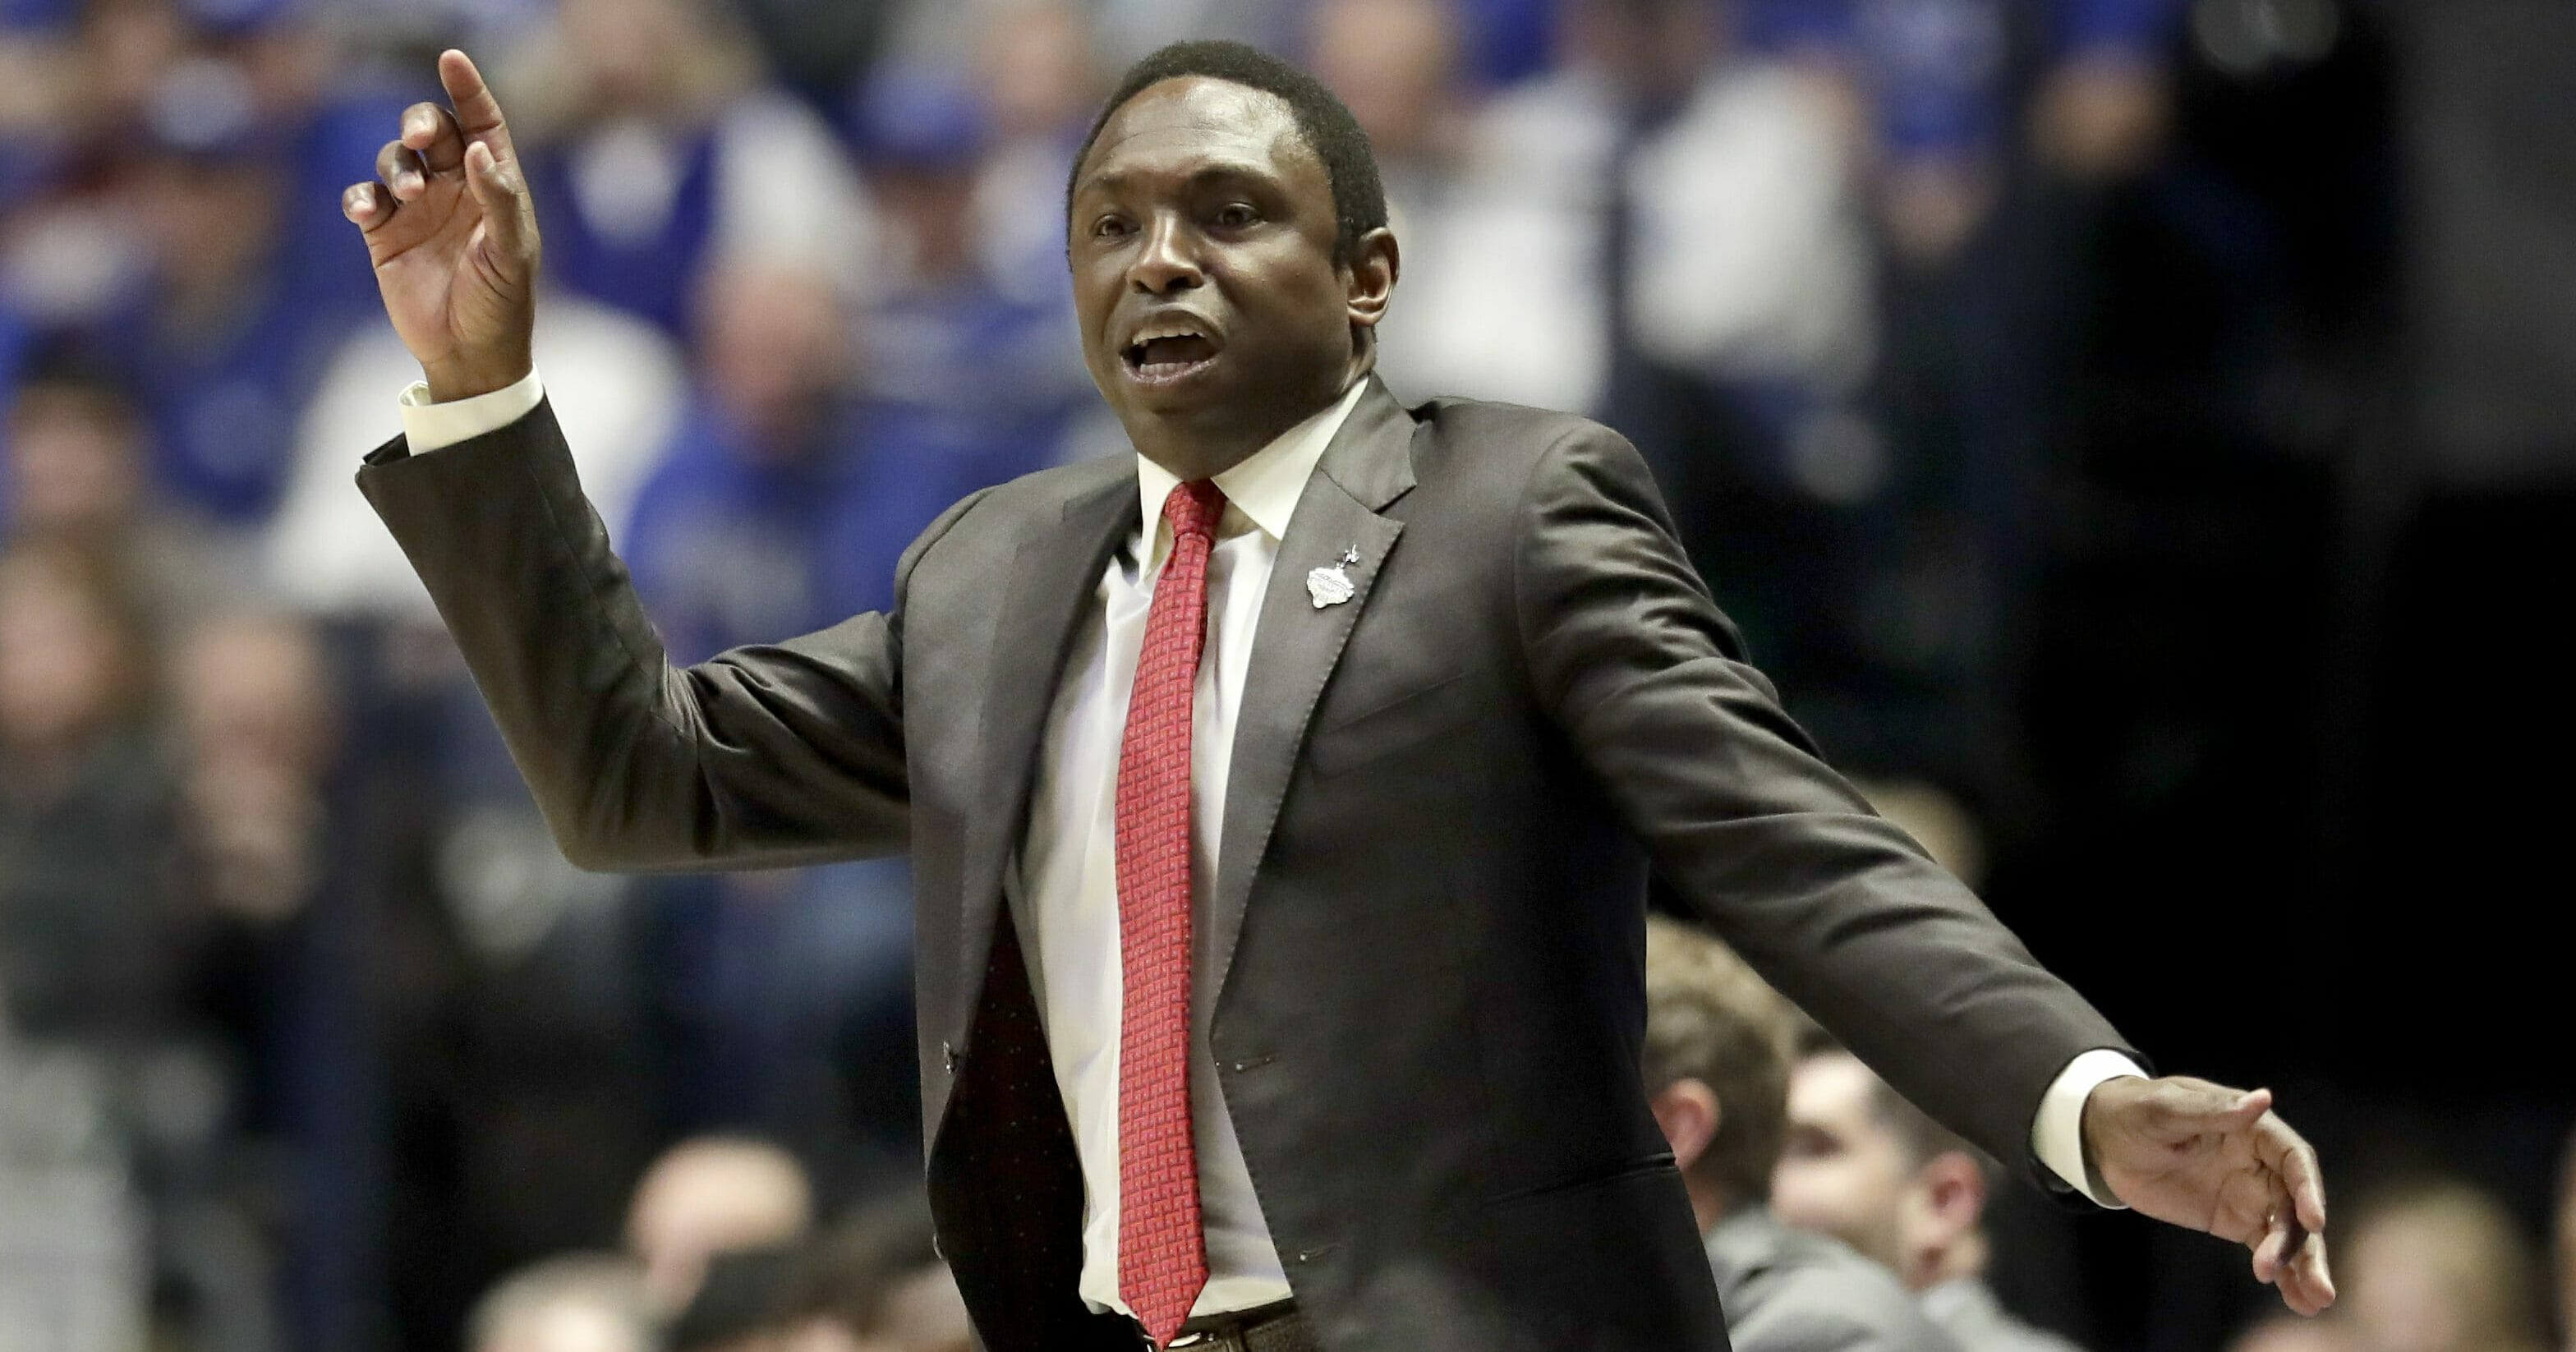 Alabama head coach Avery Johnson watches the action in the first half of an NCAA college basketball game against Kentucky at the Southeastern Conference tournament Friday, Mar. 15, 2019, in Nashville.